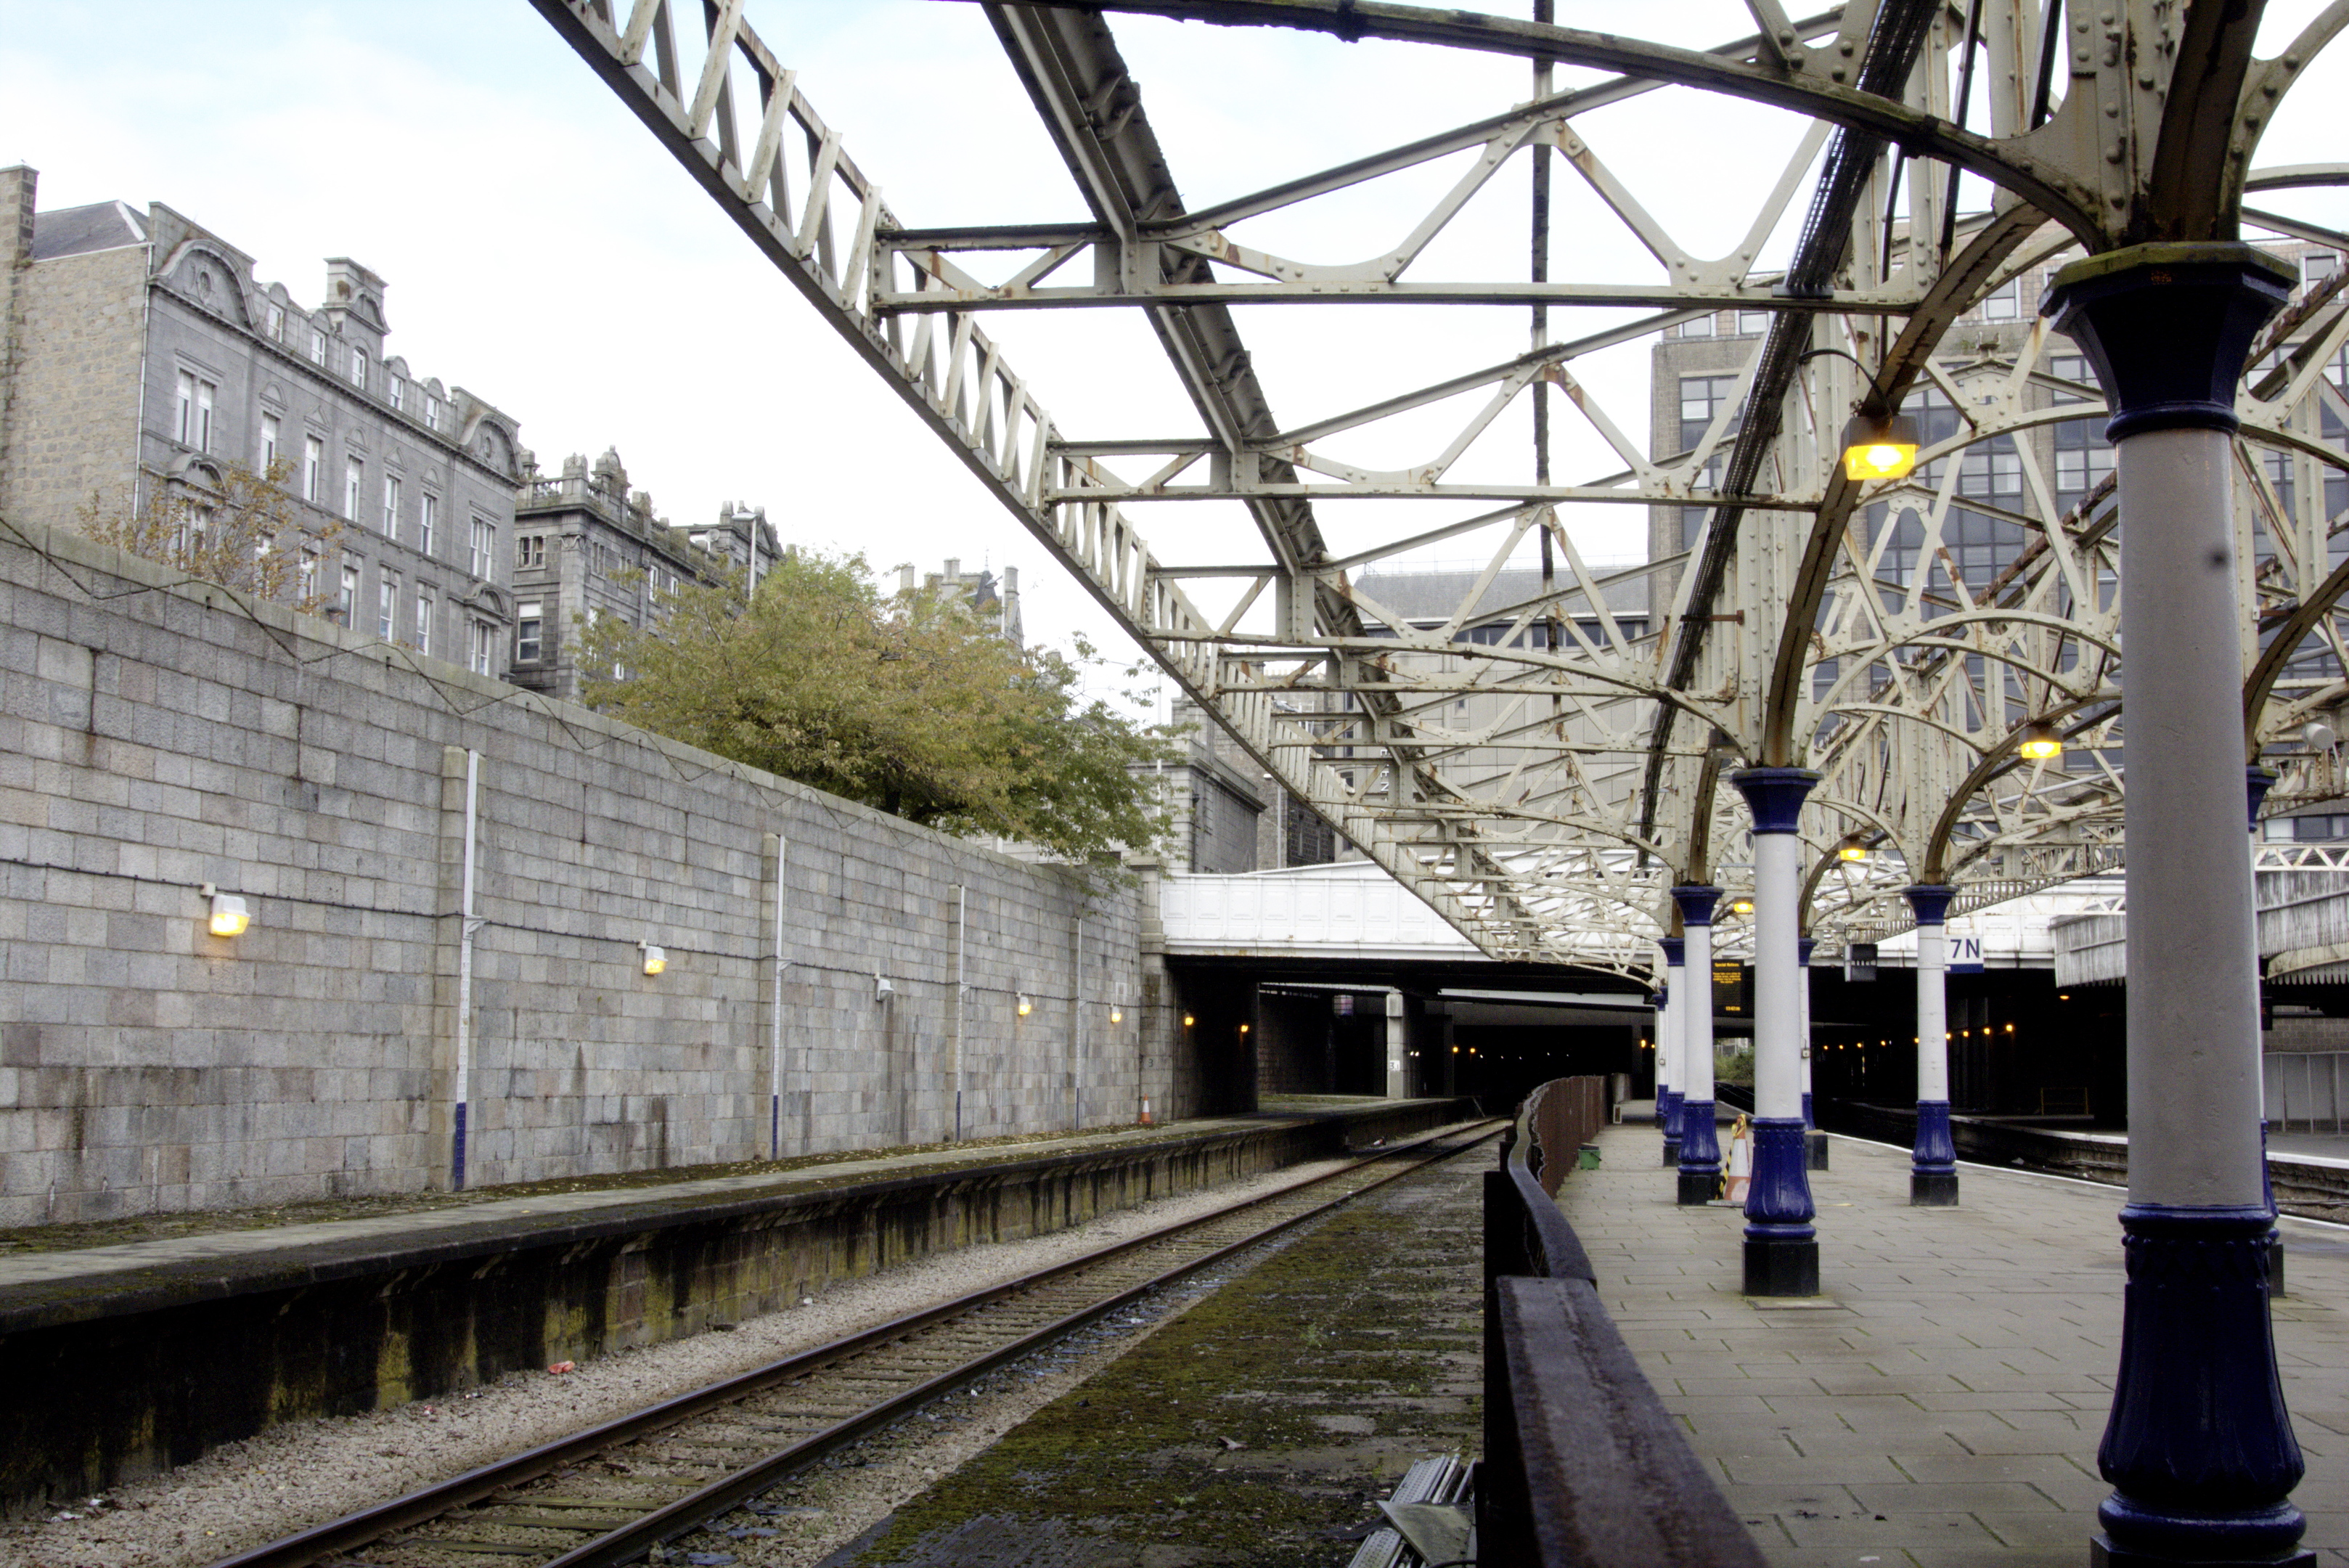 Platform nine, on the left, and eight, on the right, at Aberdeen Railway Station haven't been used for passenger services since the 1970s.